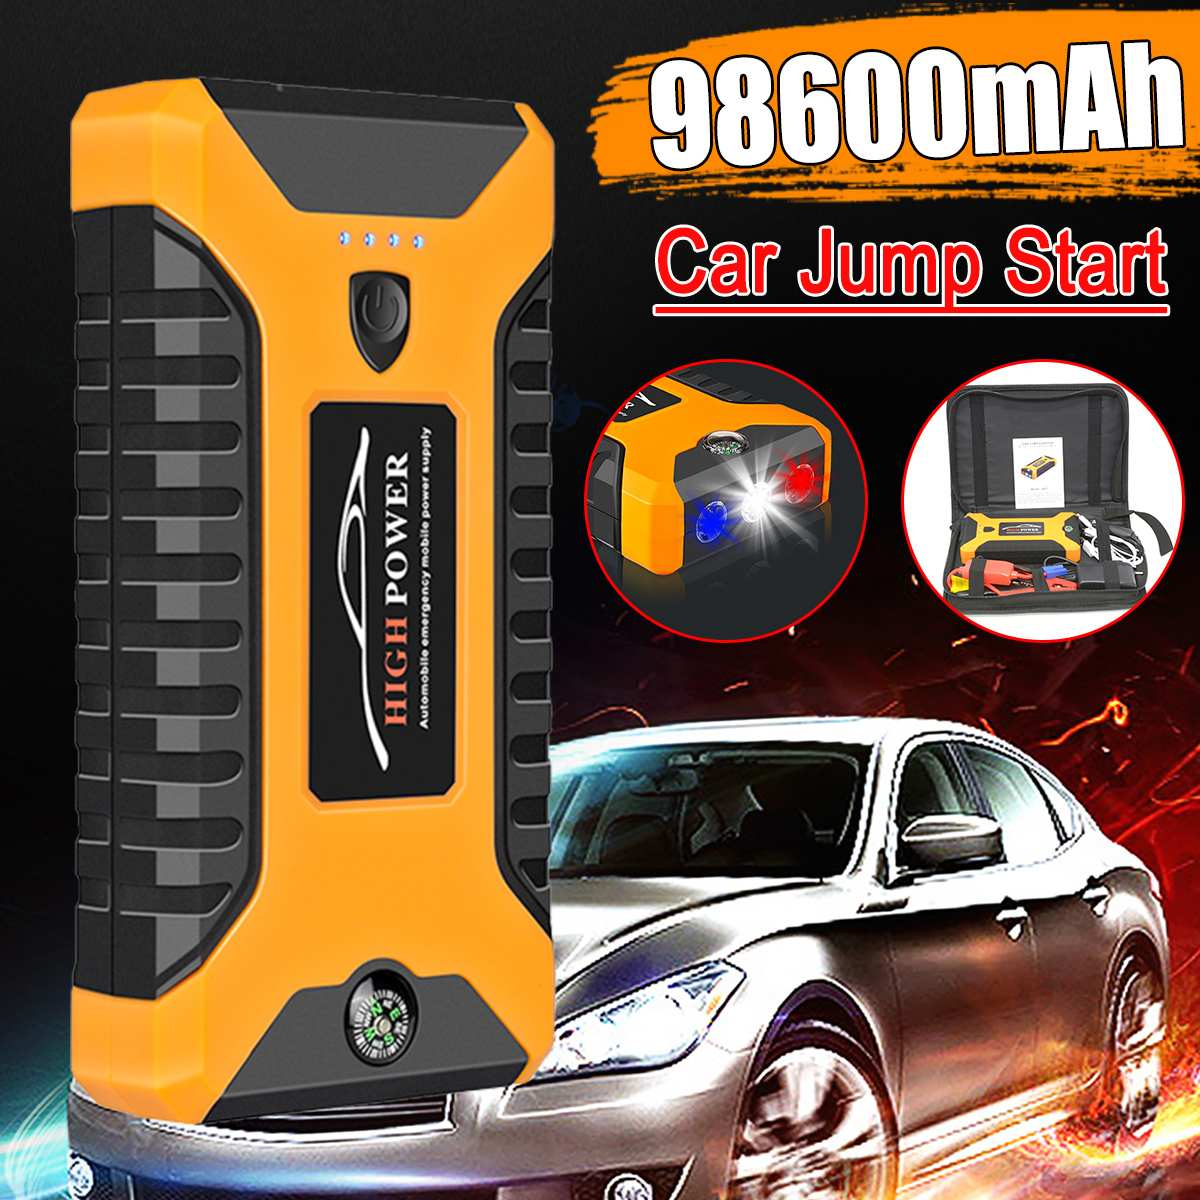 Quick Jumper In-Car No Cables Battery Booster Starter Car Auto Easy Portable New